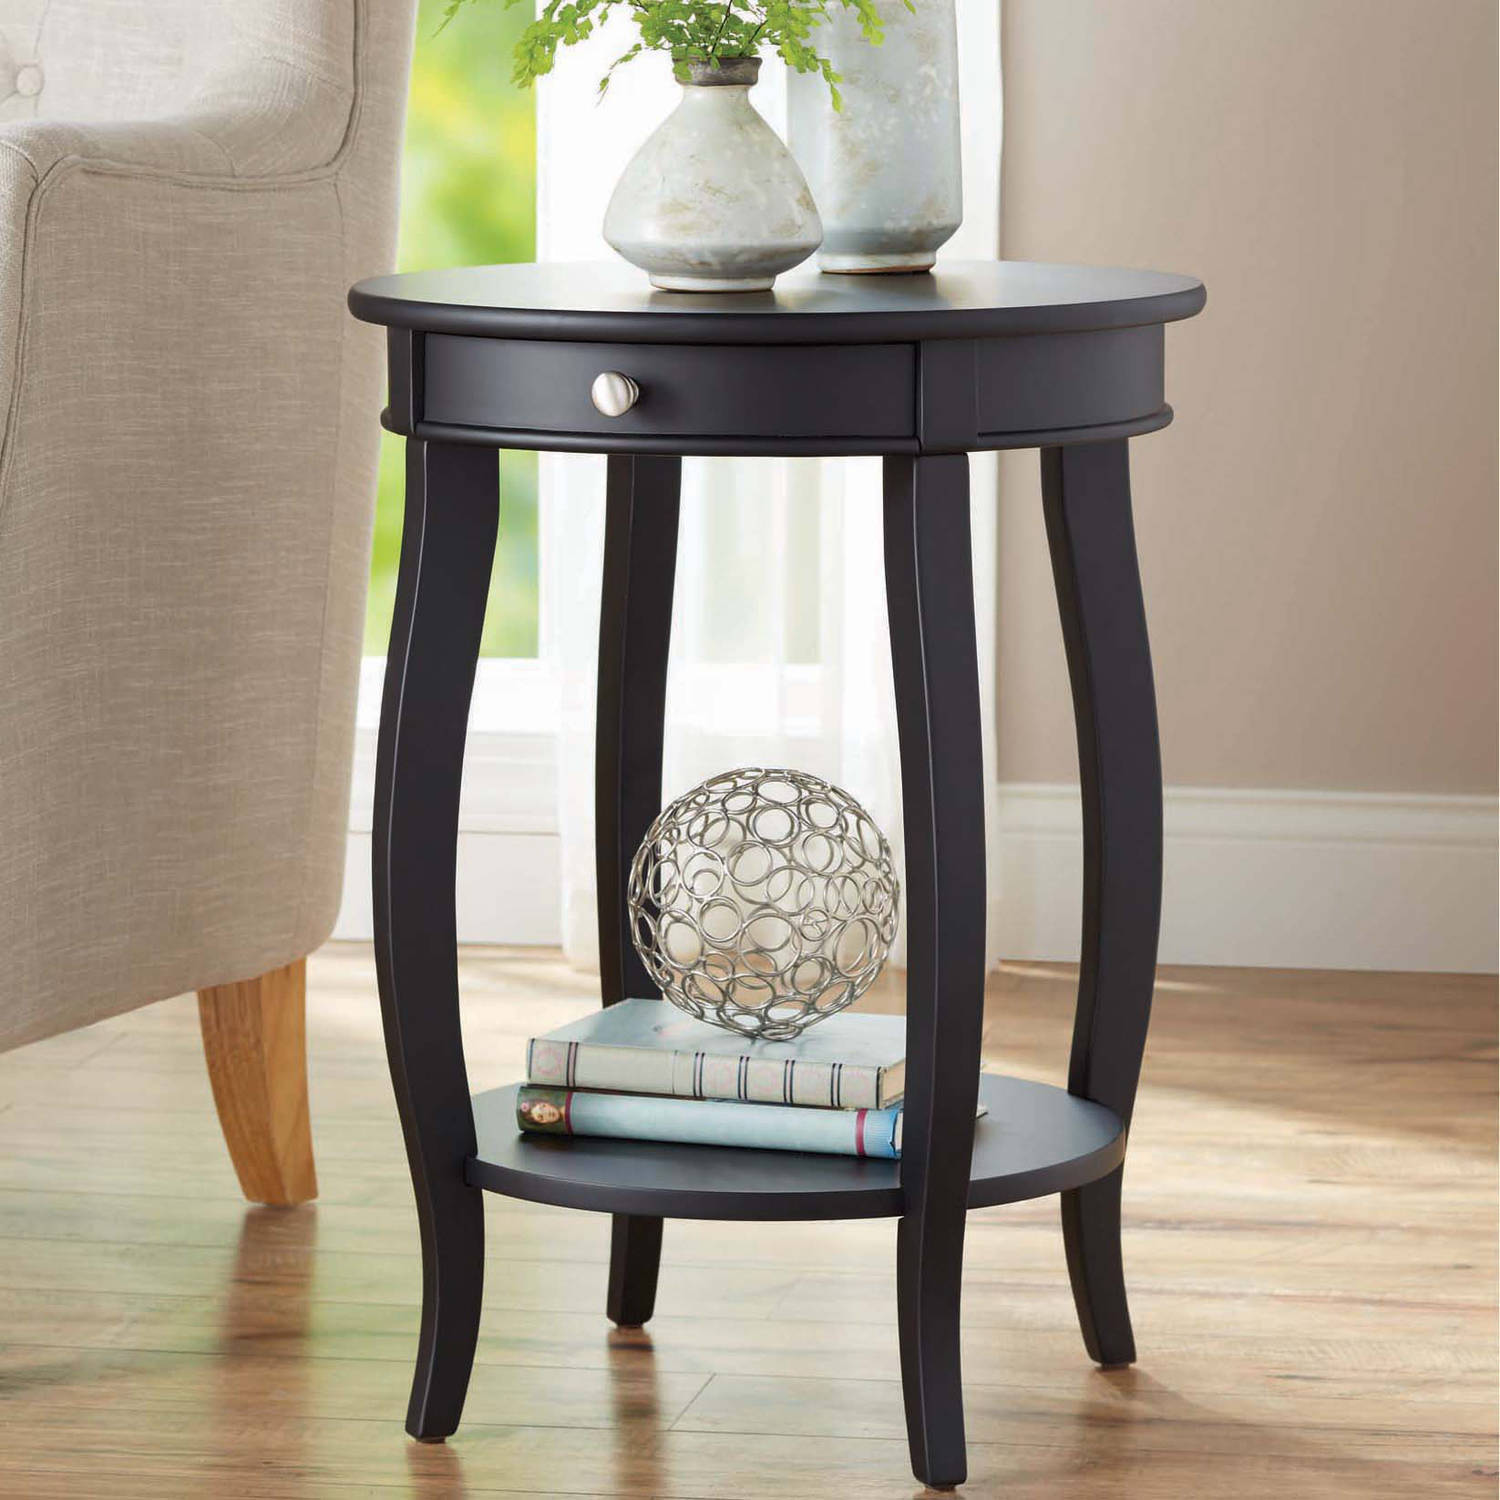 better homes gardens round accent table with drawer multiple iron colors black oval coffee timber trestle legs kmart kids deck nautical chandelier shades wood and metal side large